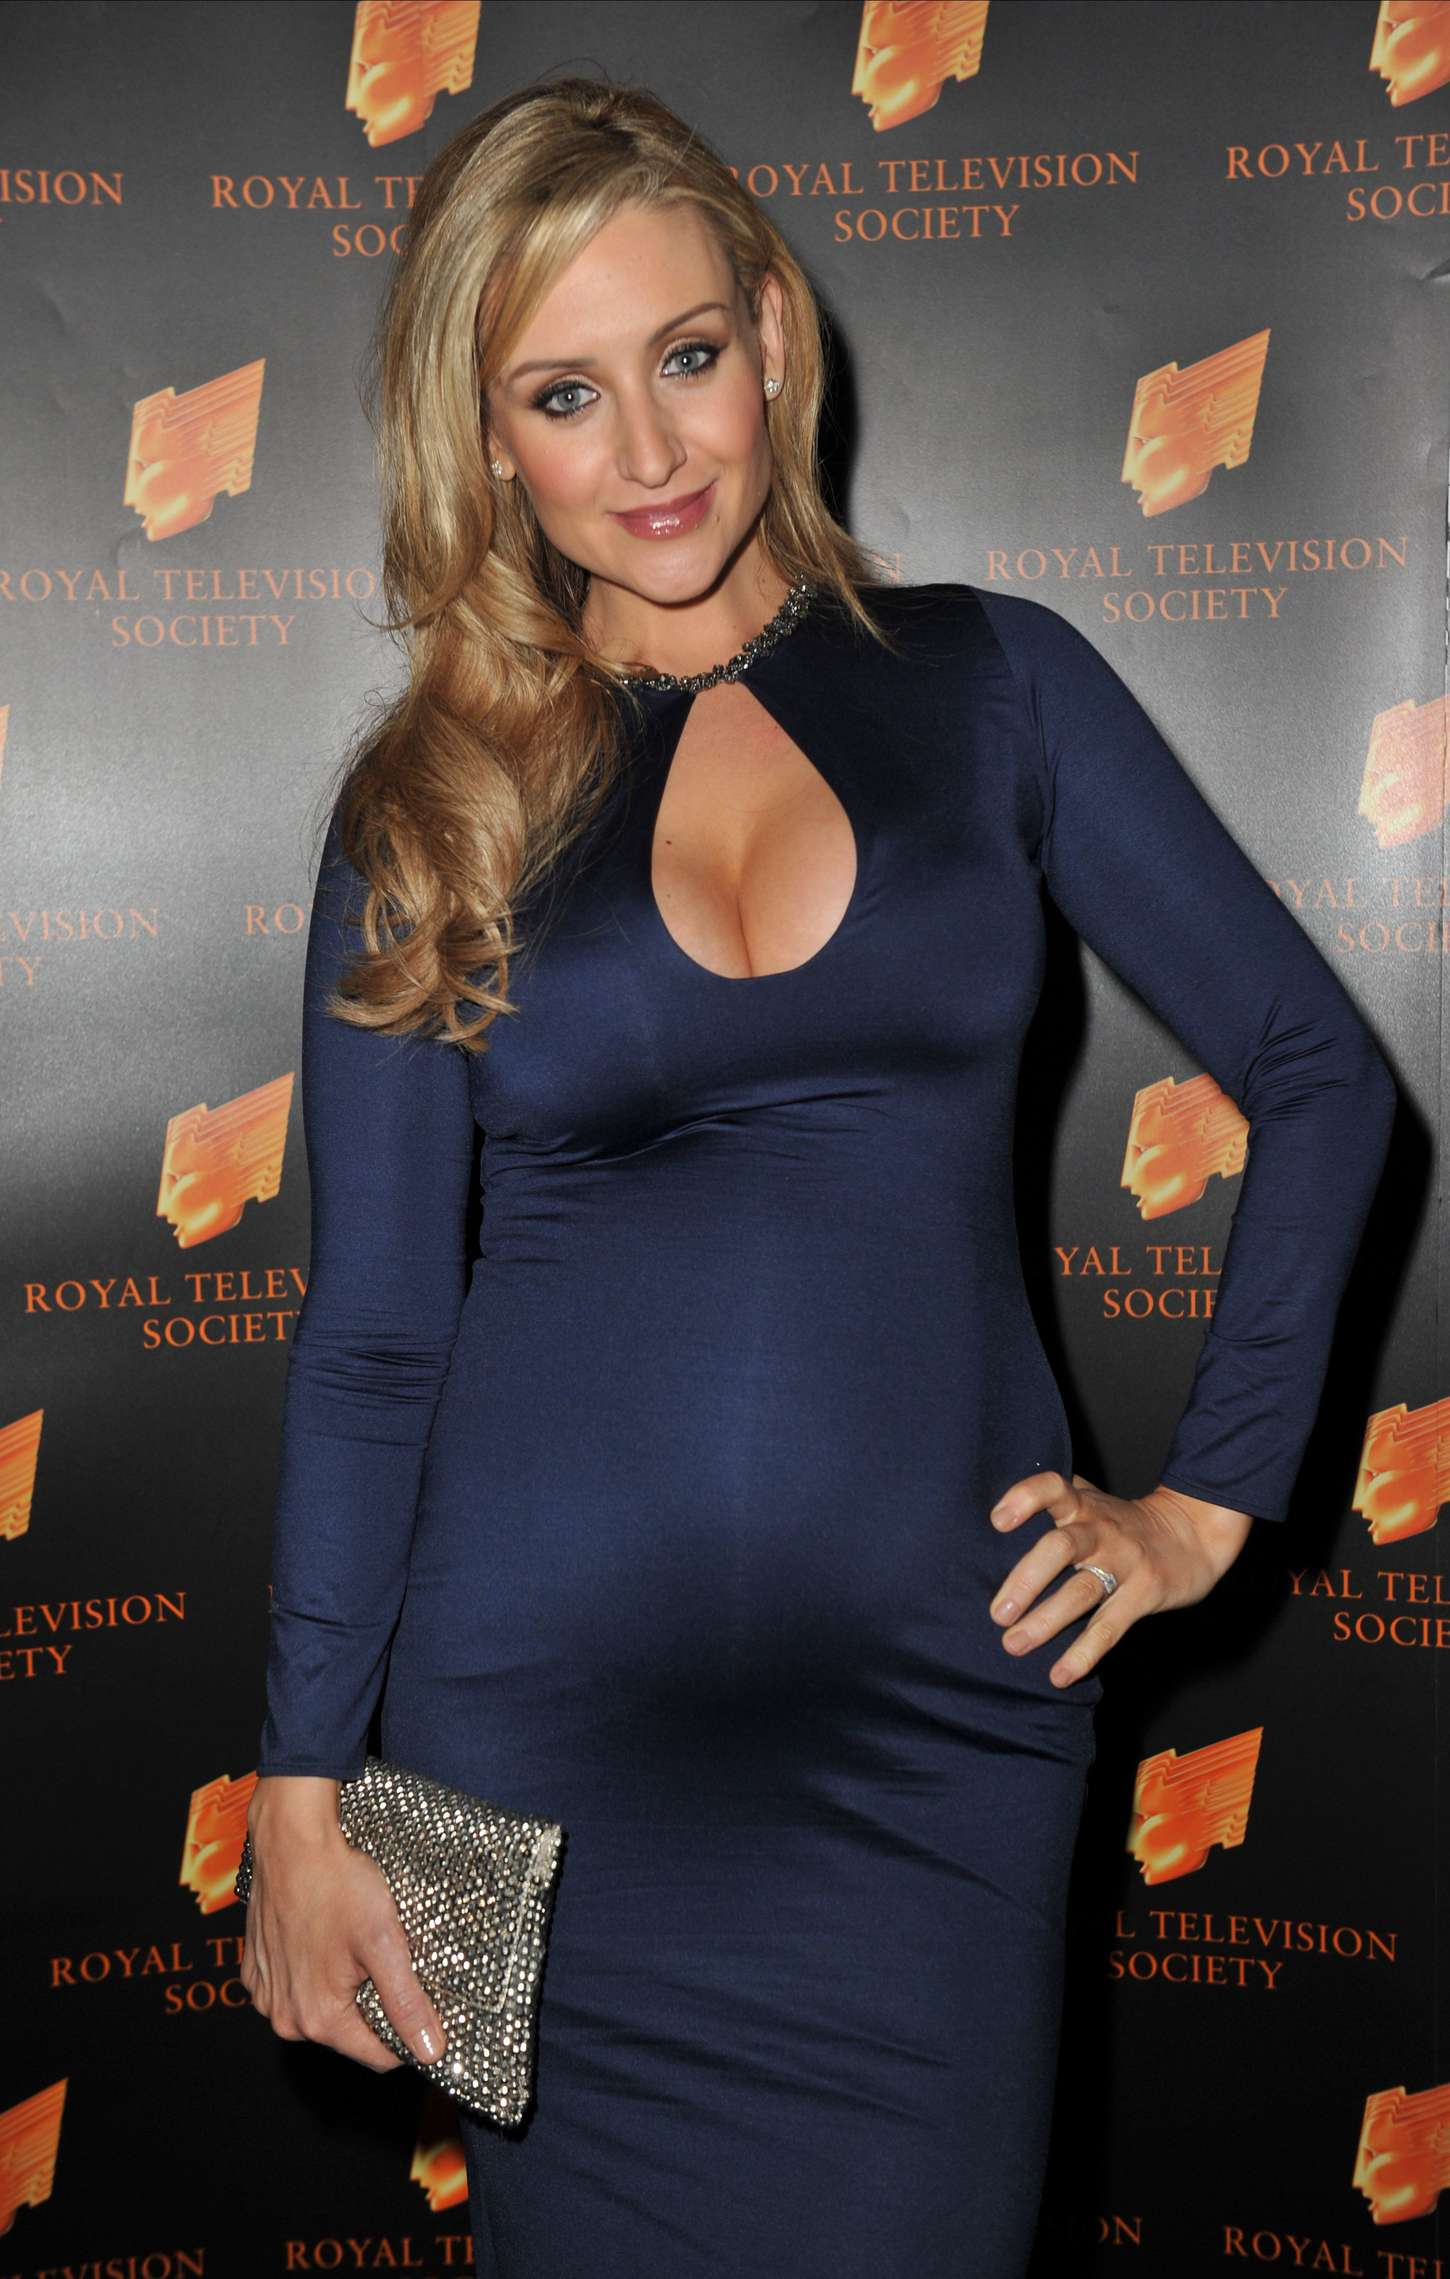 Catherine Tyldesley RTS Awards in Manchester